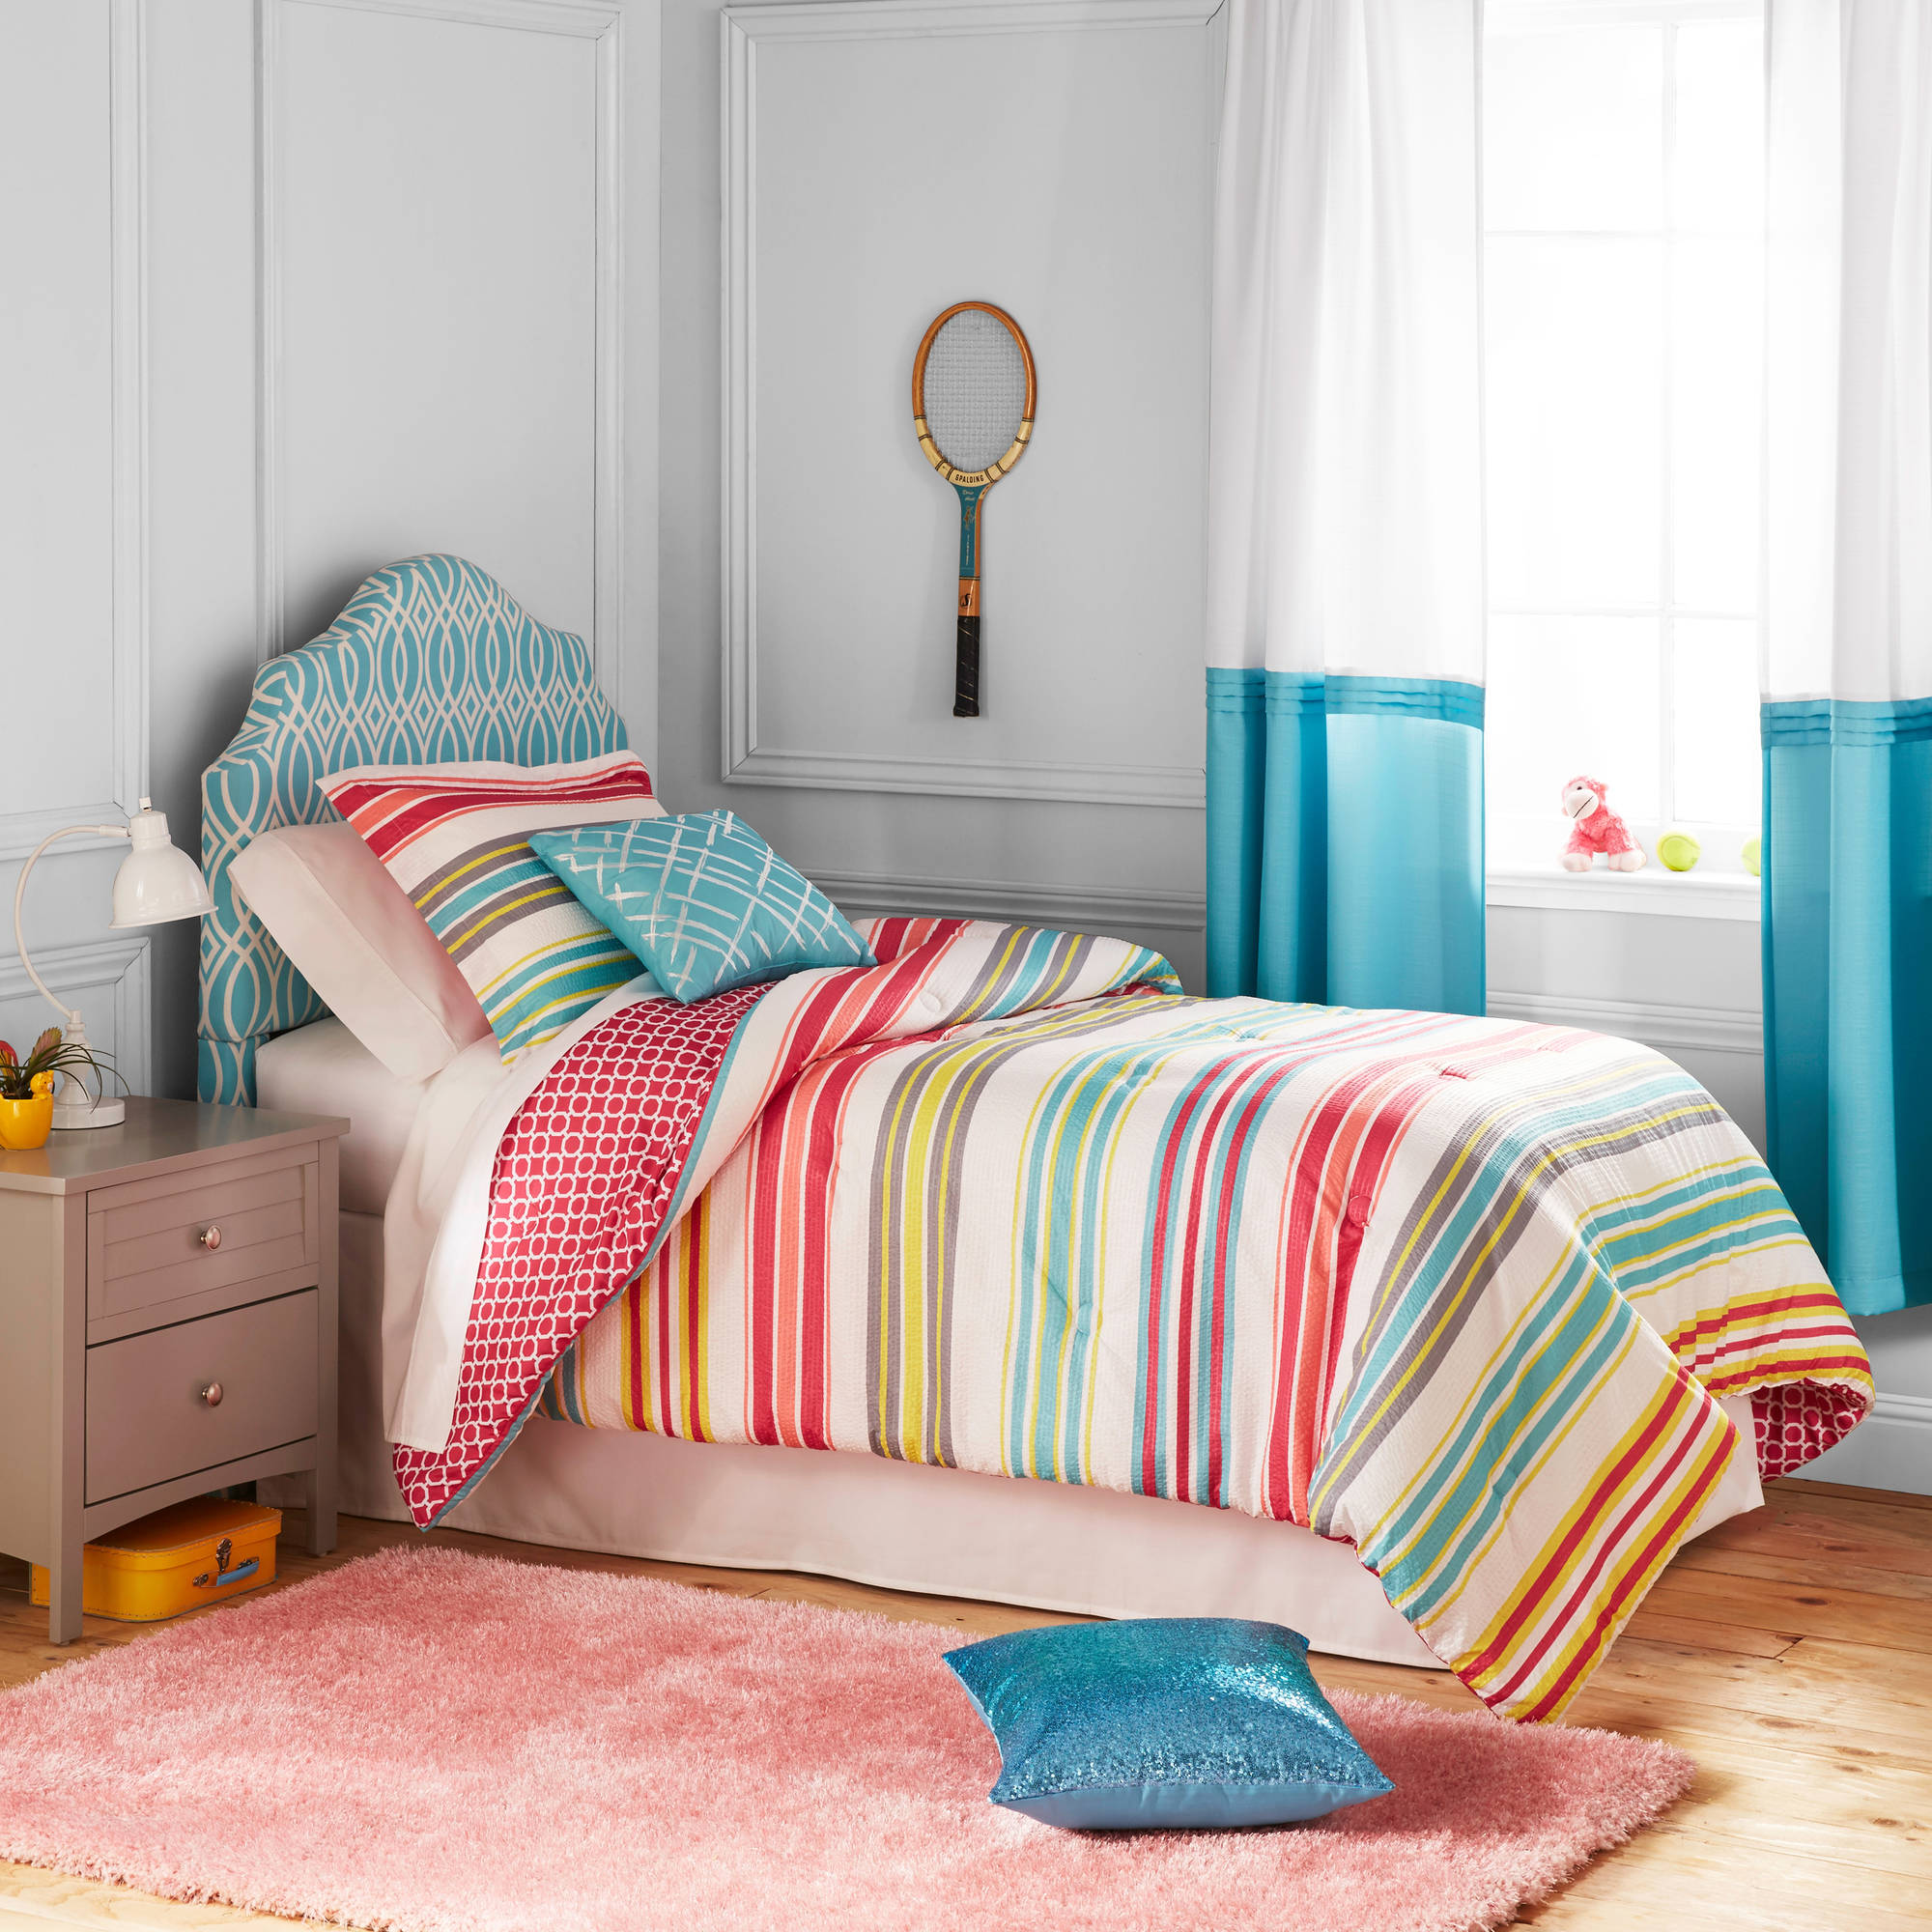 Better Homes and Gardens Kids Candy Stripe Bedding Comforter Set